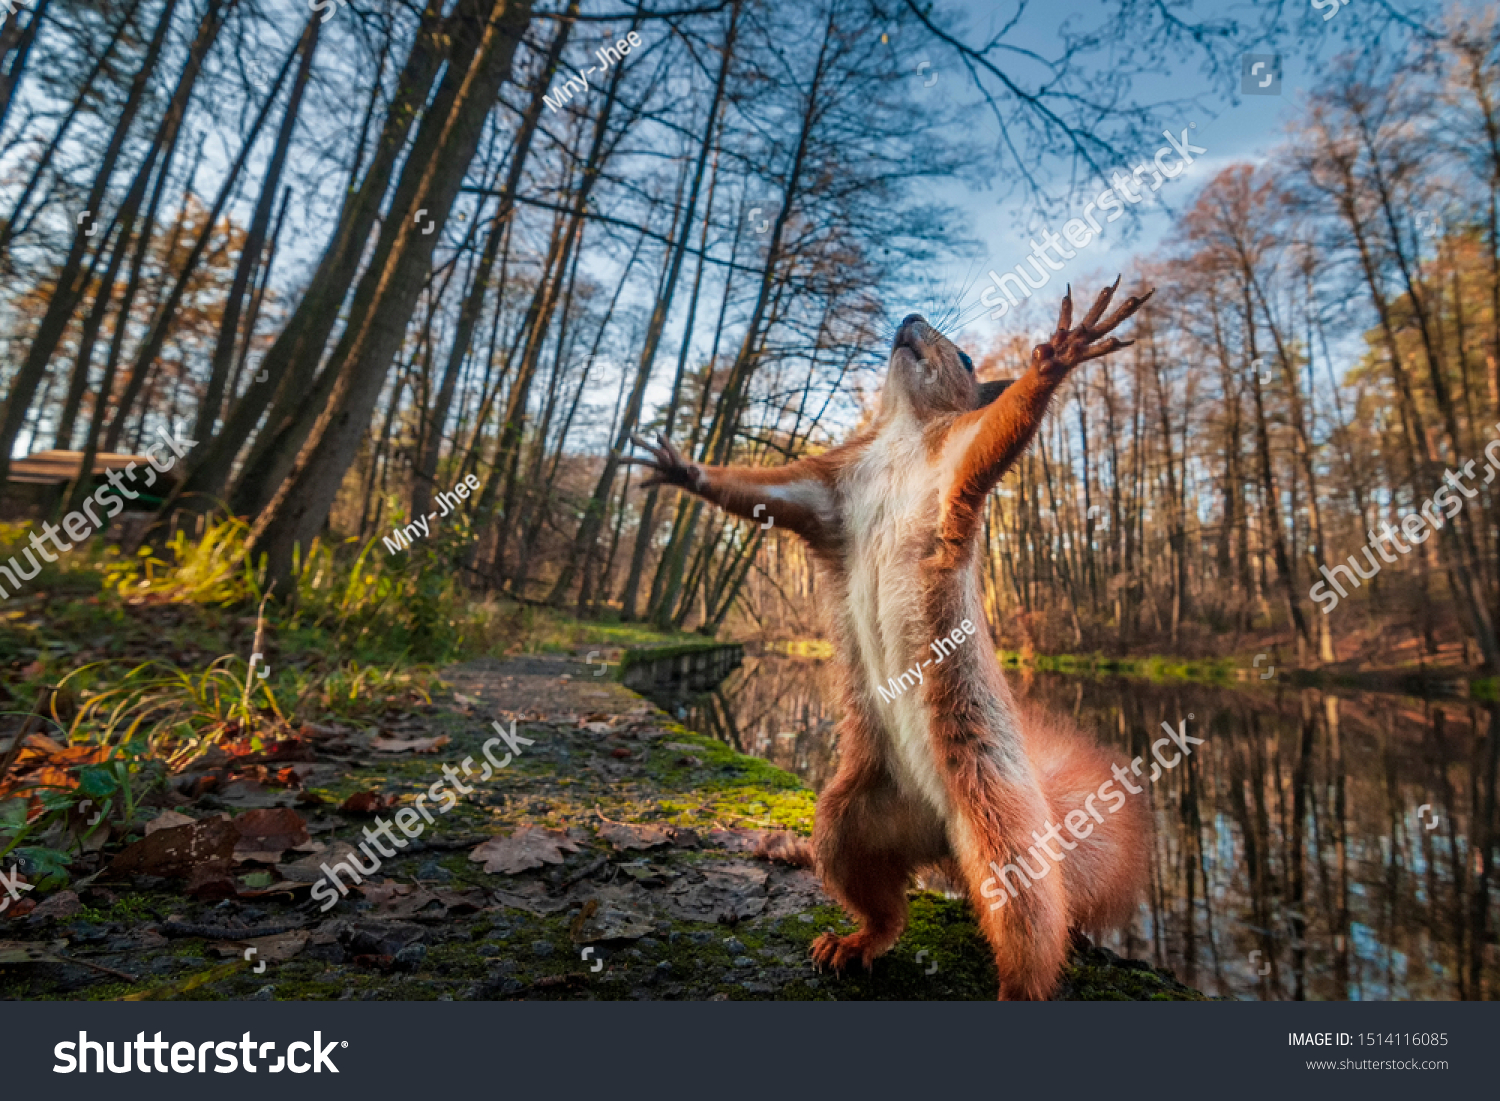 Funny red squirrell standing in the forest like Master of the Universe. Comic animal #1514116085